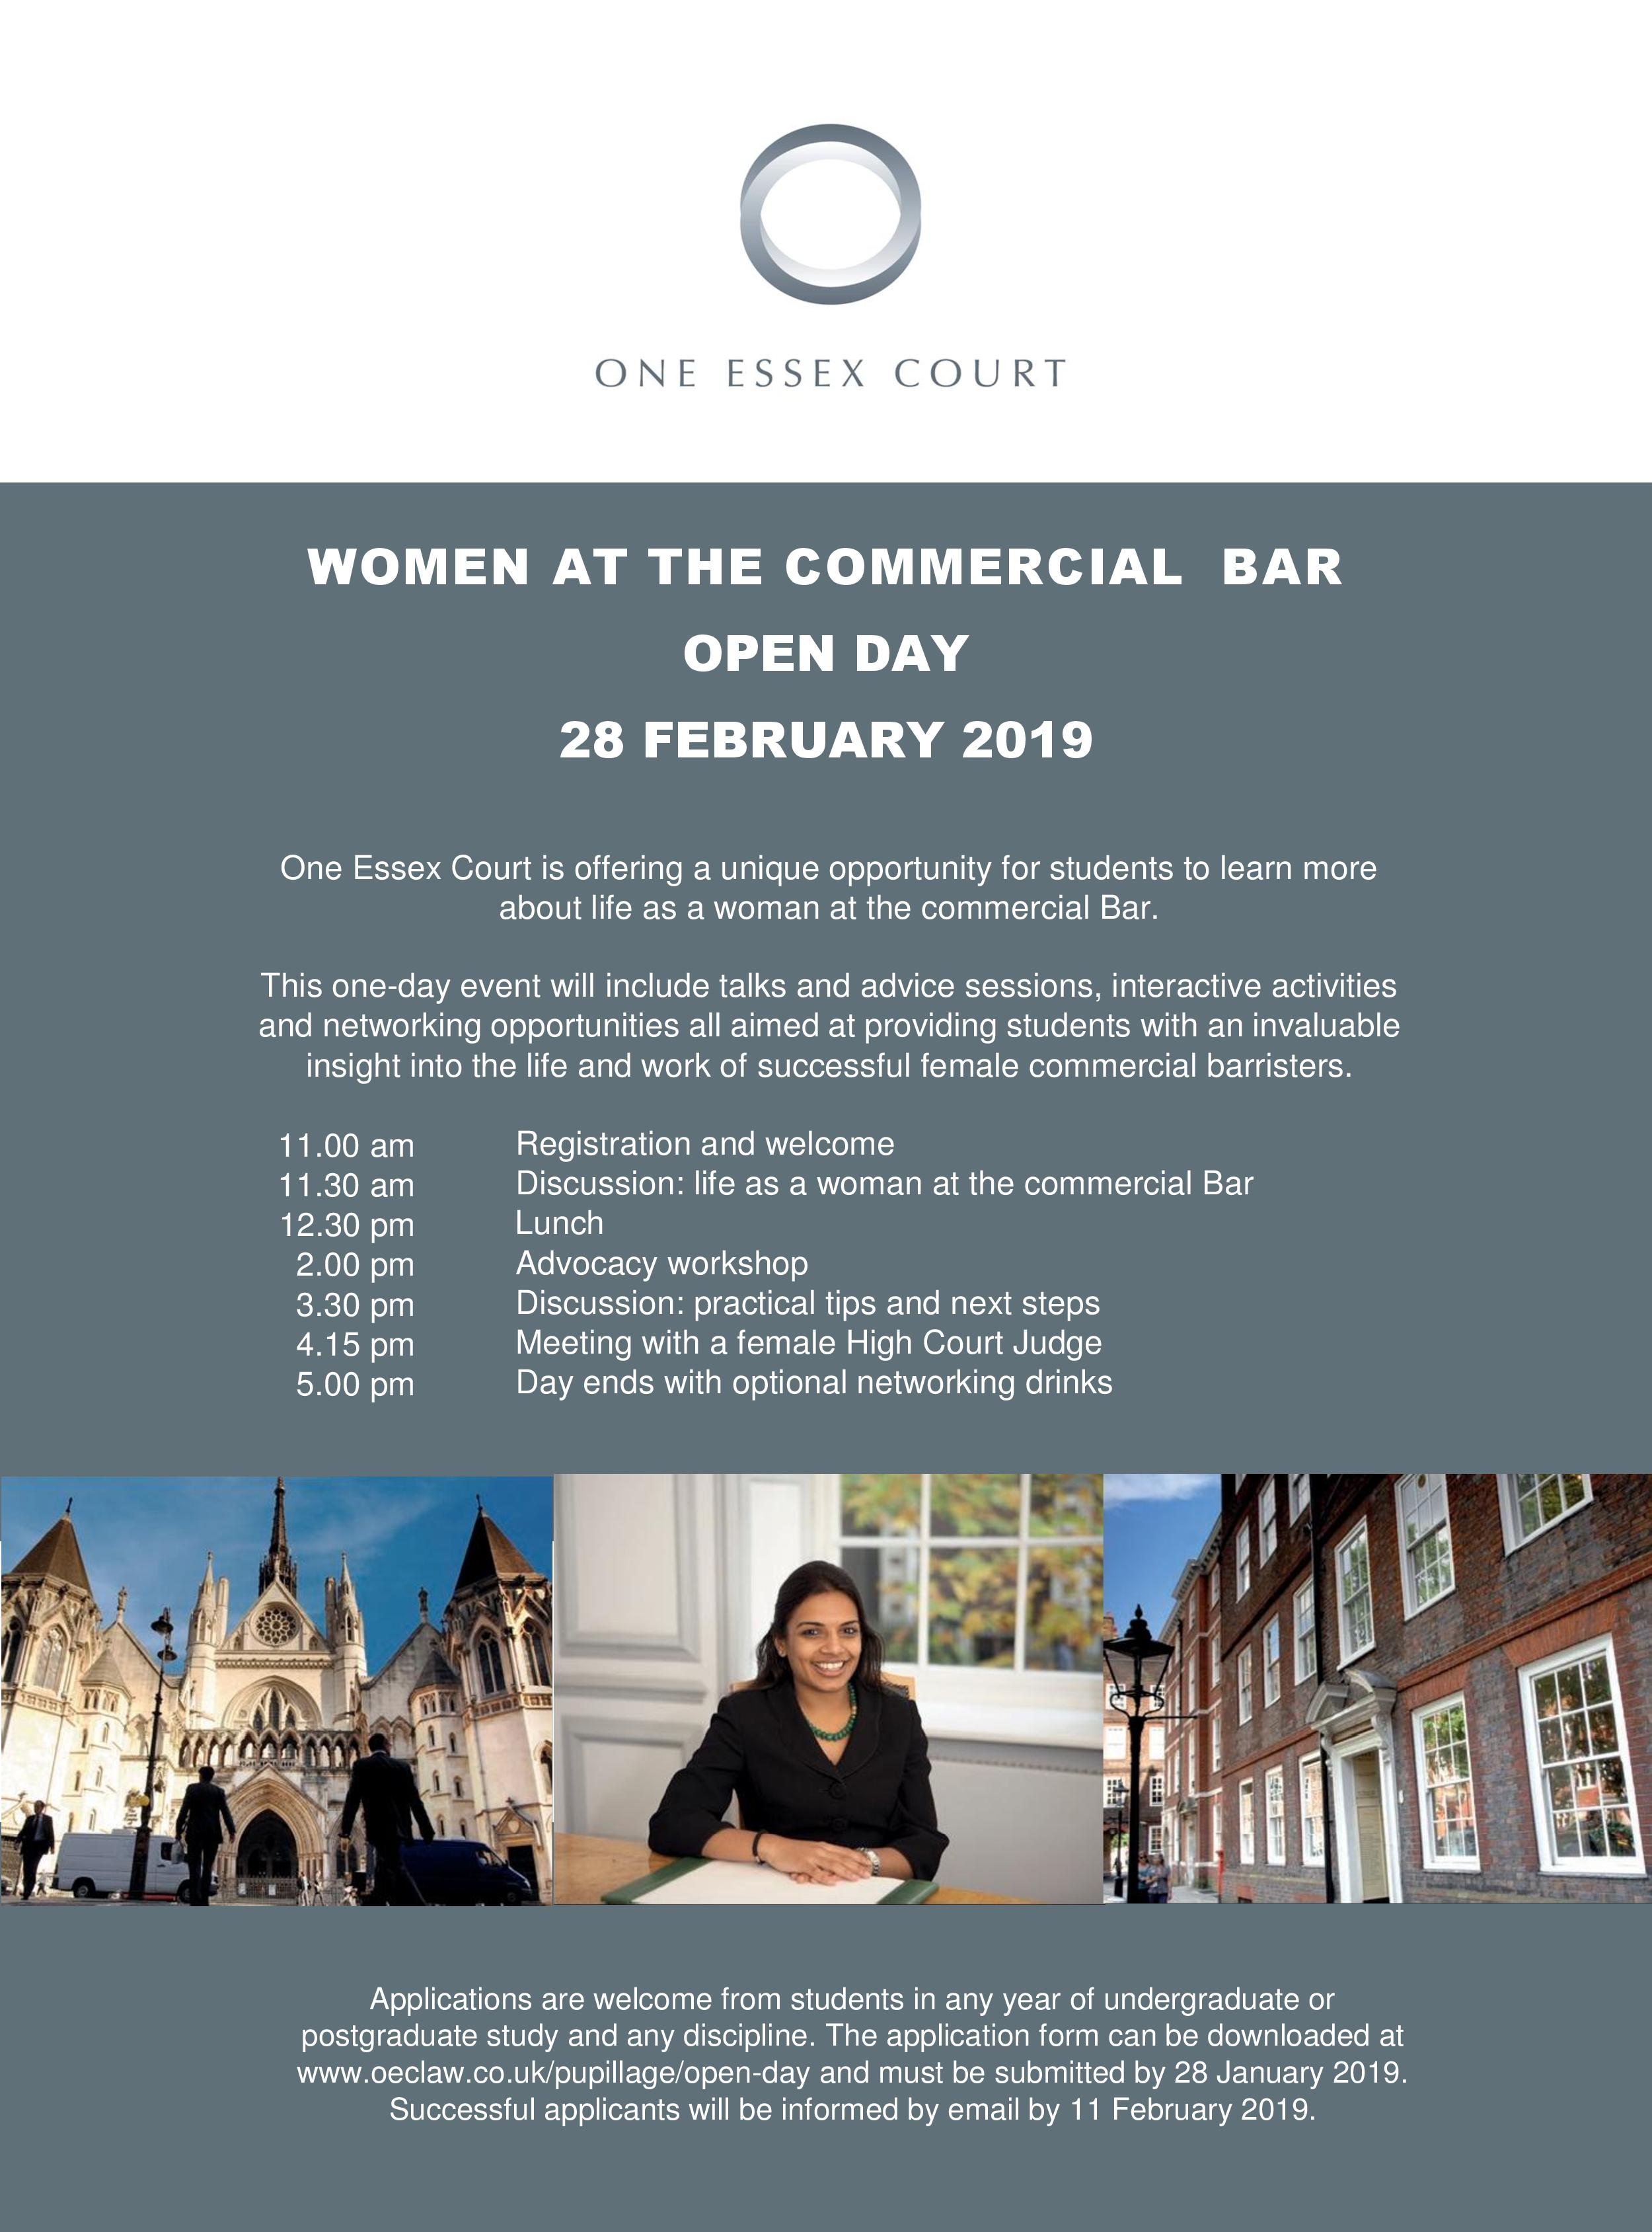 Women at the Commercial Bar flyer 2019-page-001.jpg